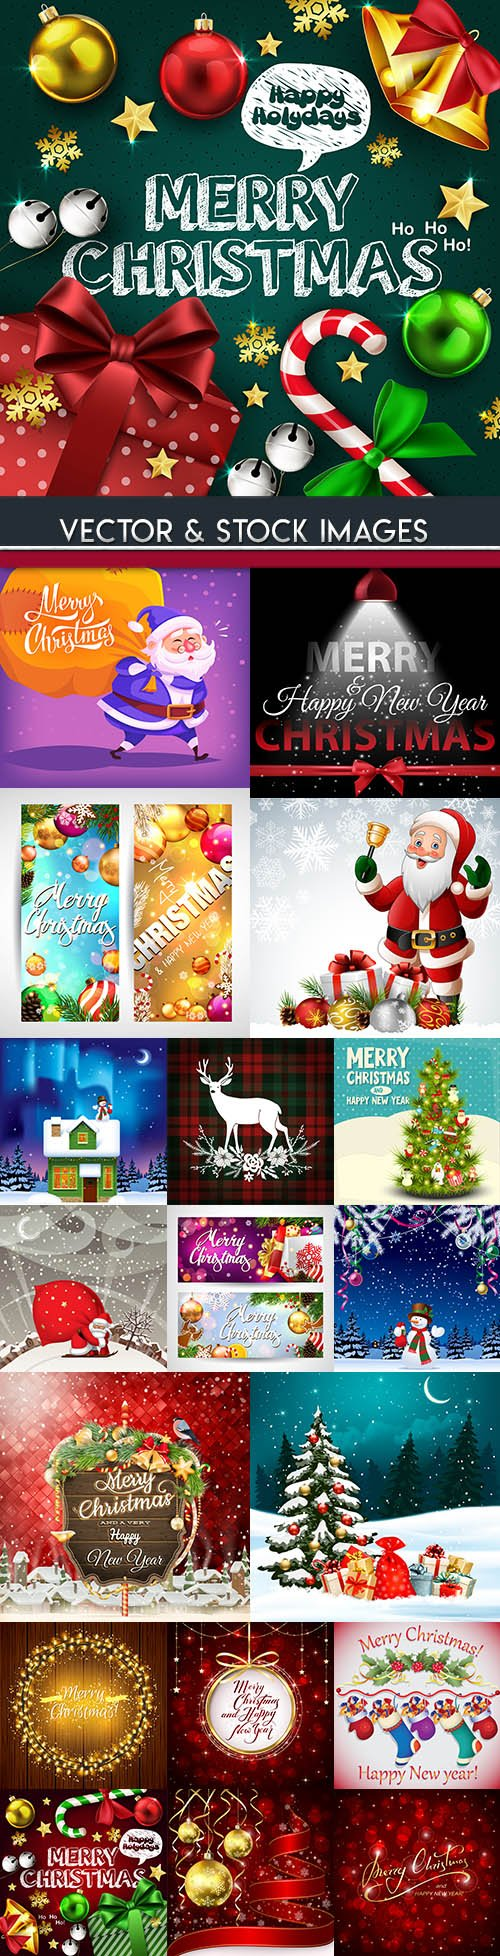 Merry Christmas and New Year background decorative 15